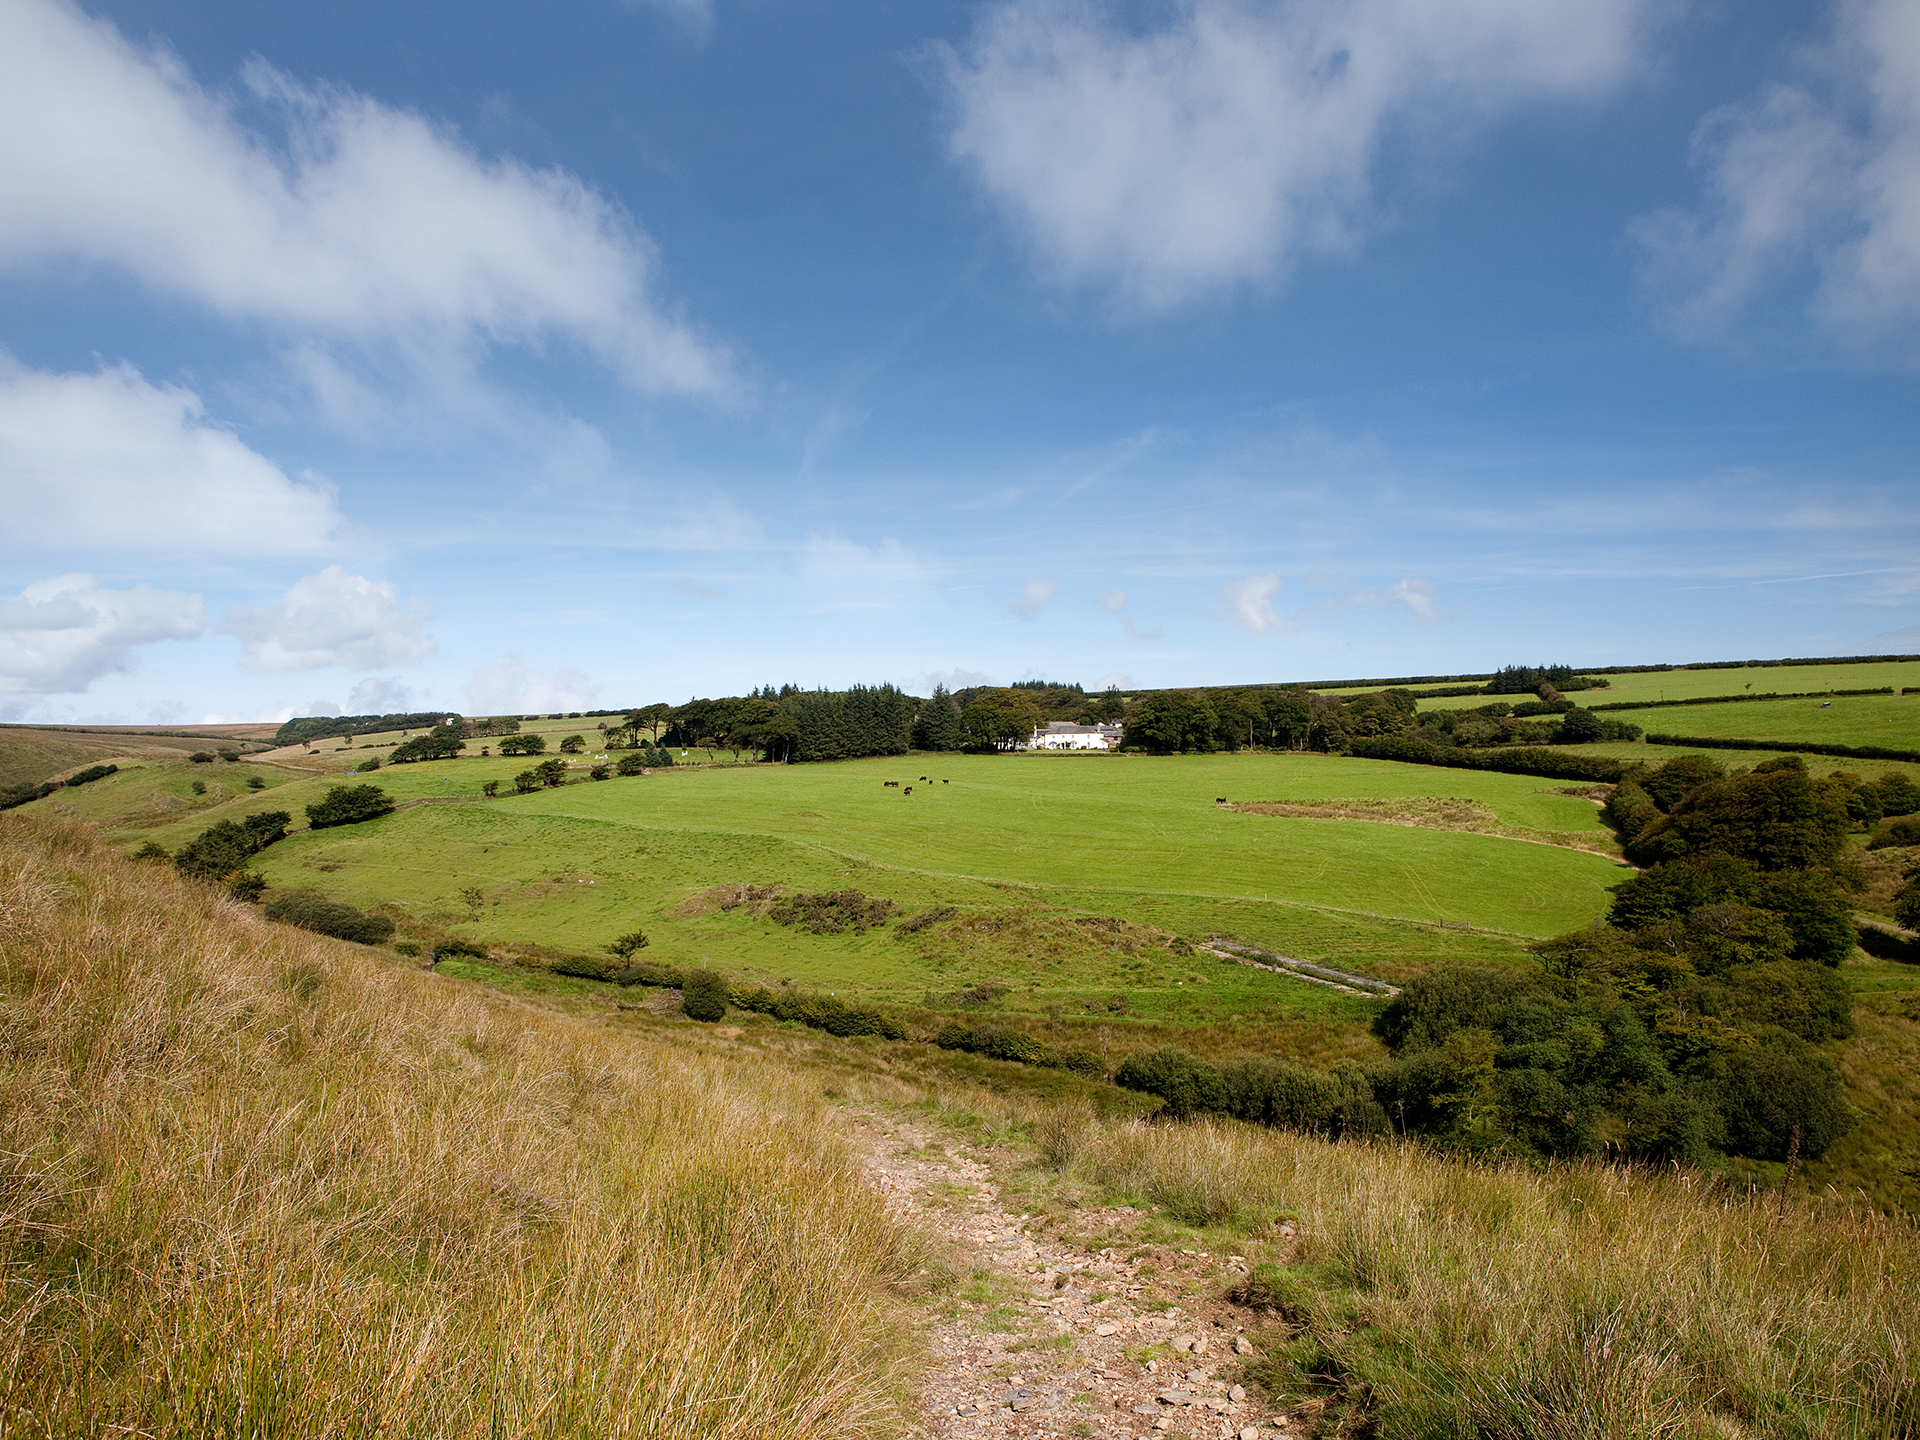 Large holiday homes surrounded by unspoilt Exmoor countryside